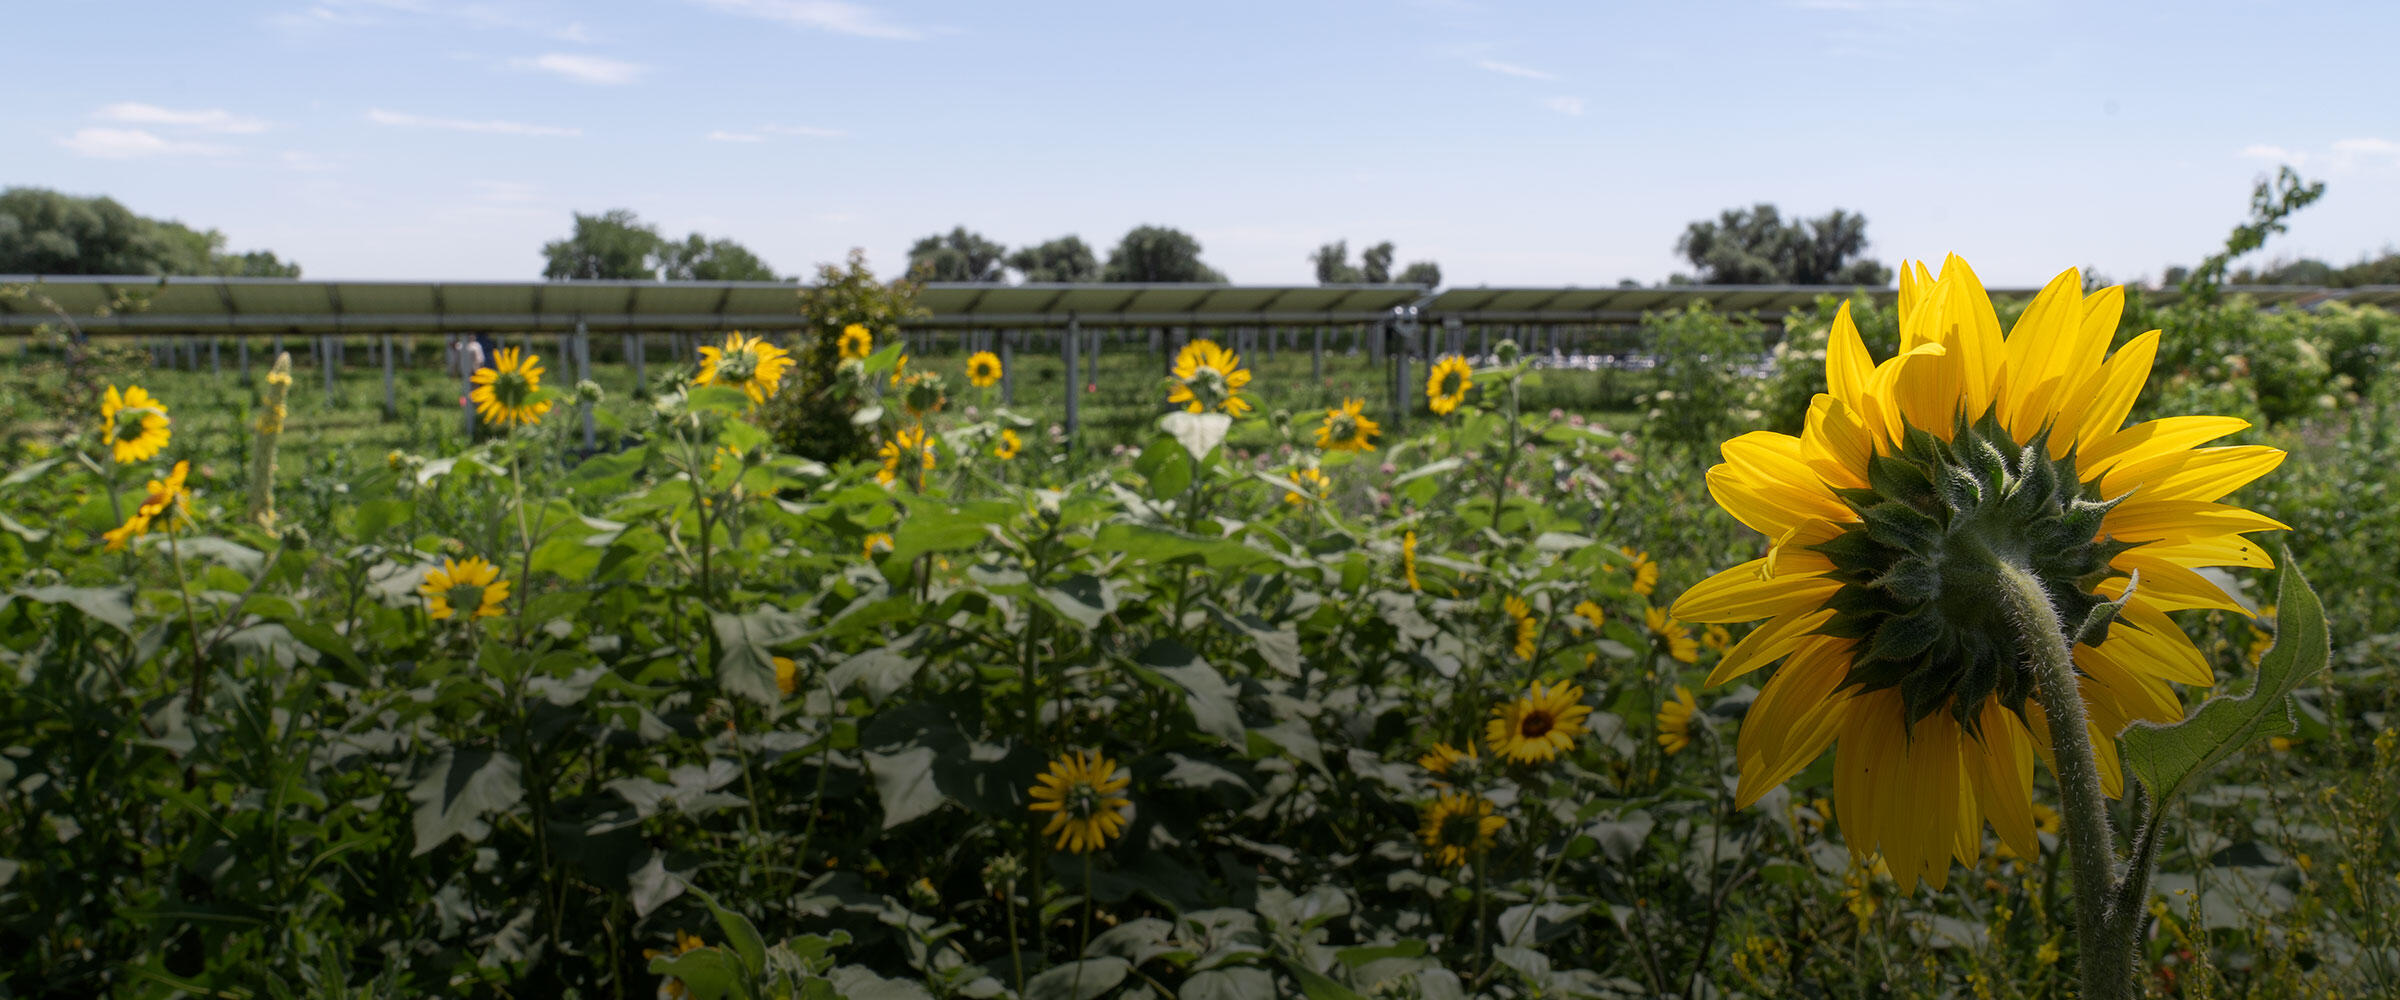 Annual sunflowers in the Habitat Hero garden at Jack's Solar Garden with solar panels in the background.